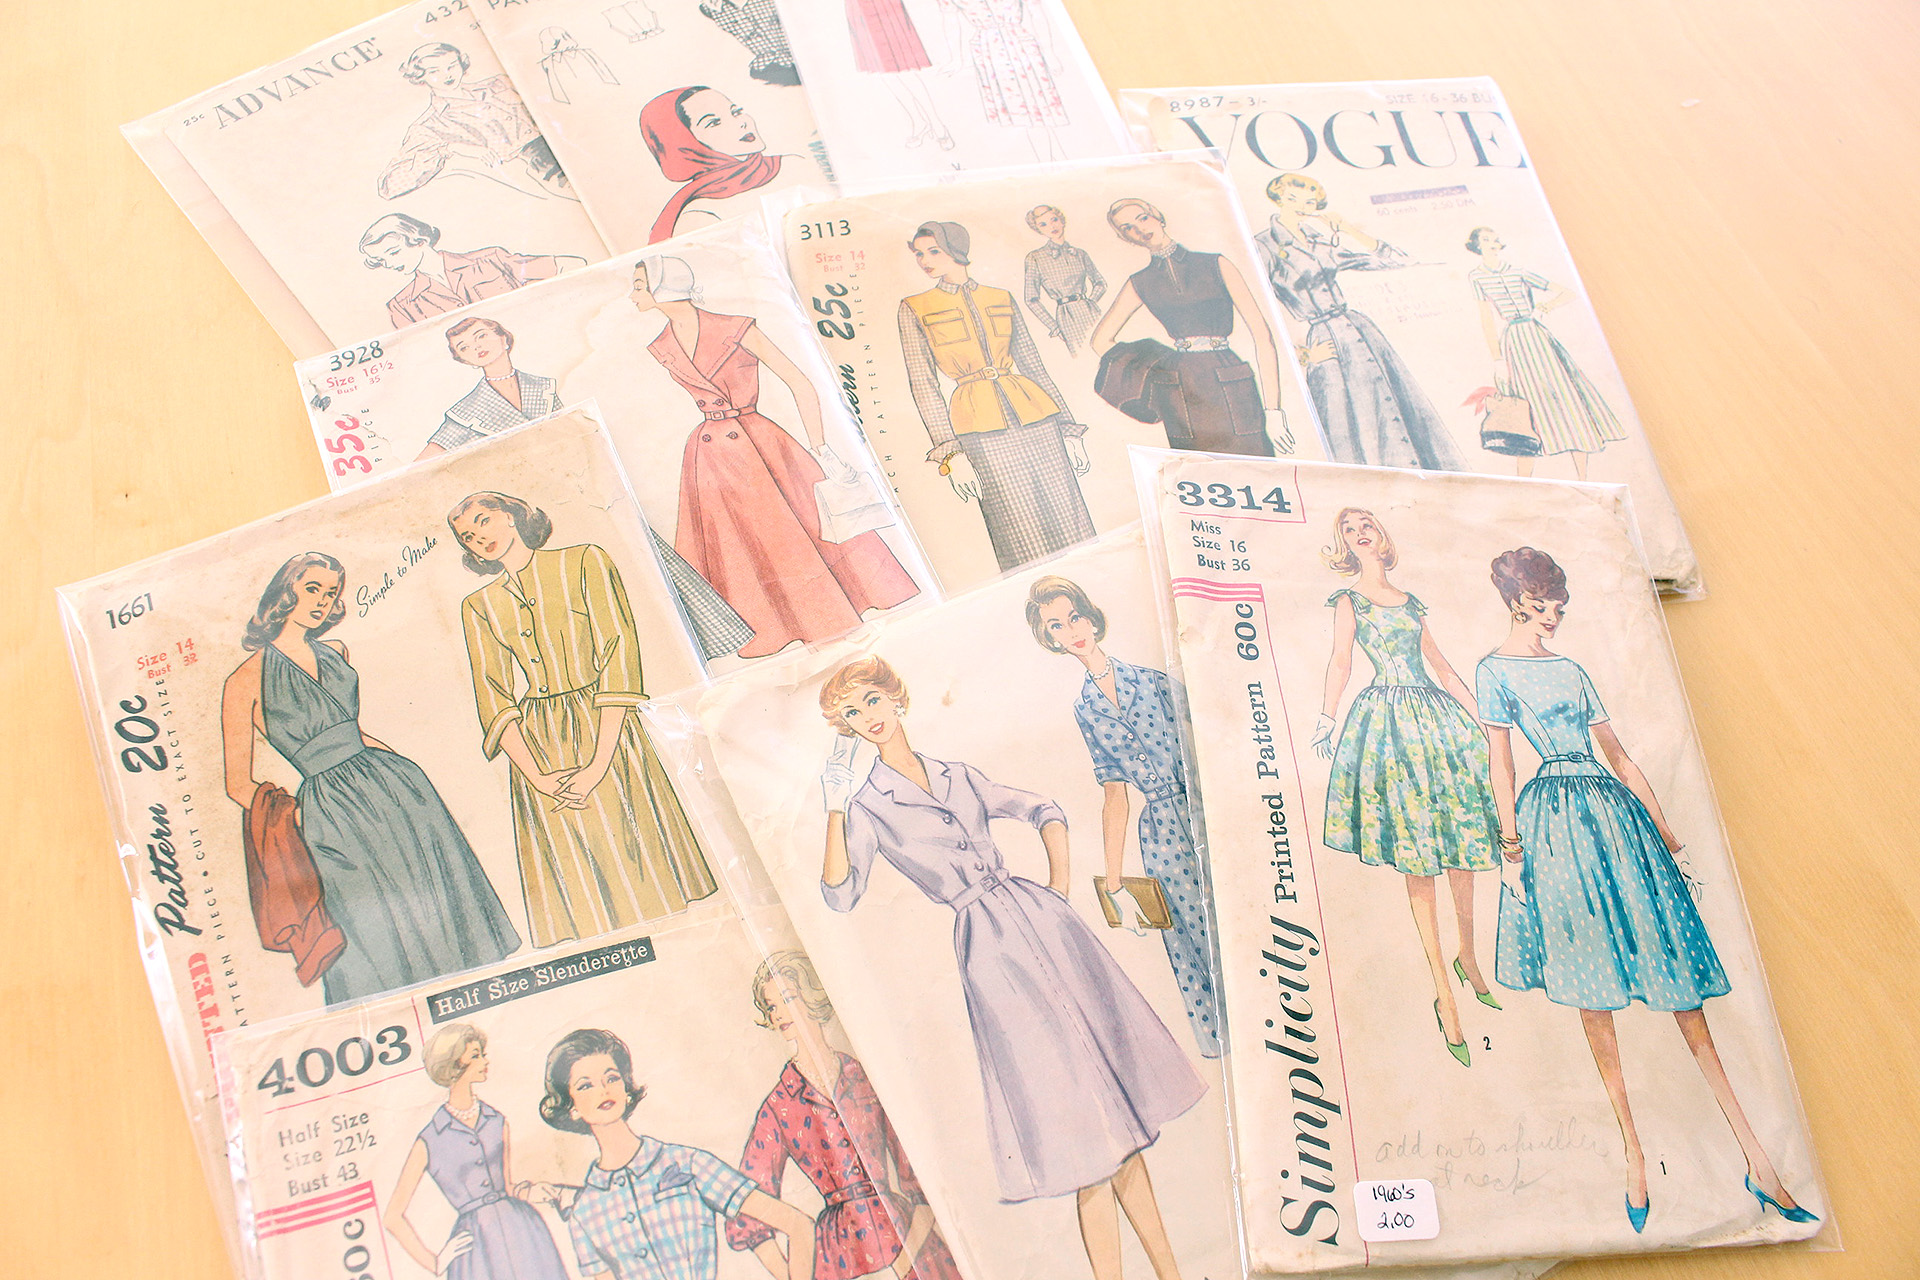 Collection of vintage patterns from the Vintage Fashion Fair, September 2016 Sewing Pinup Haul | @vintageontap